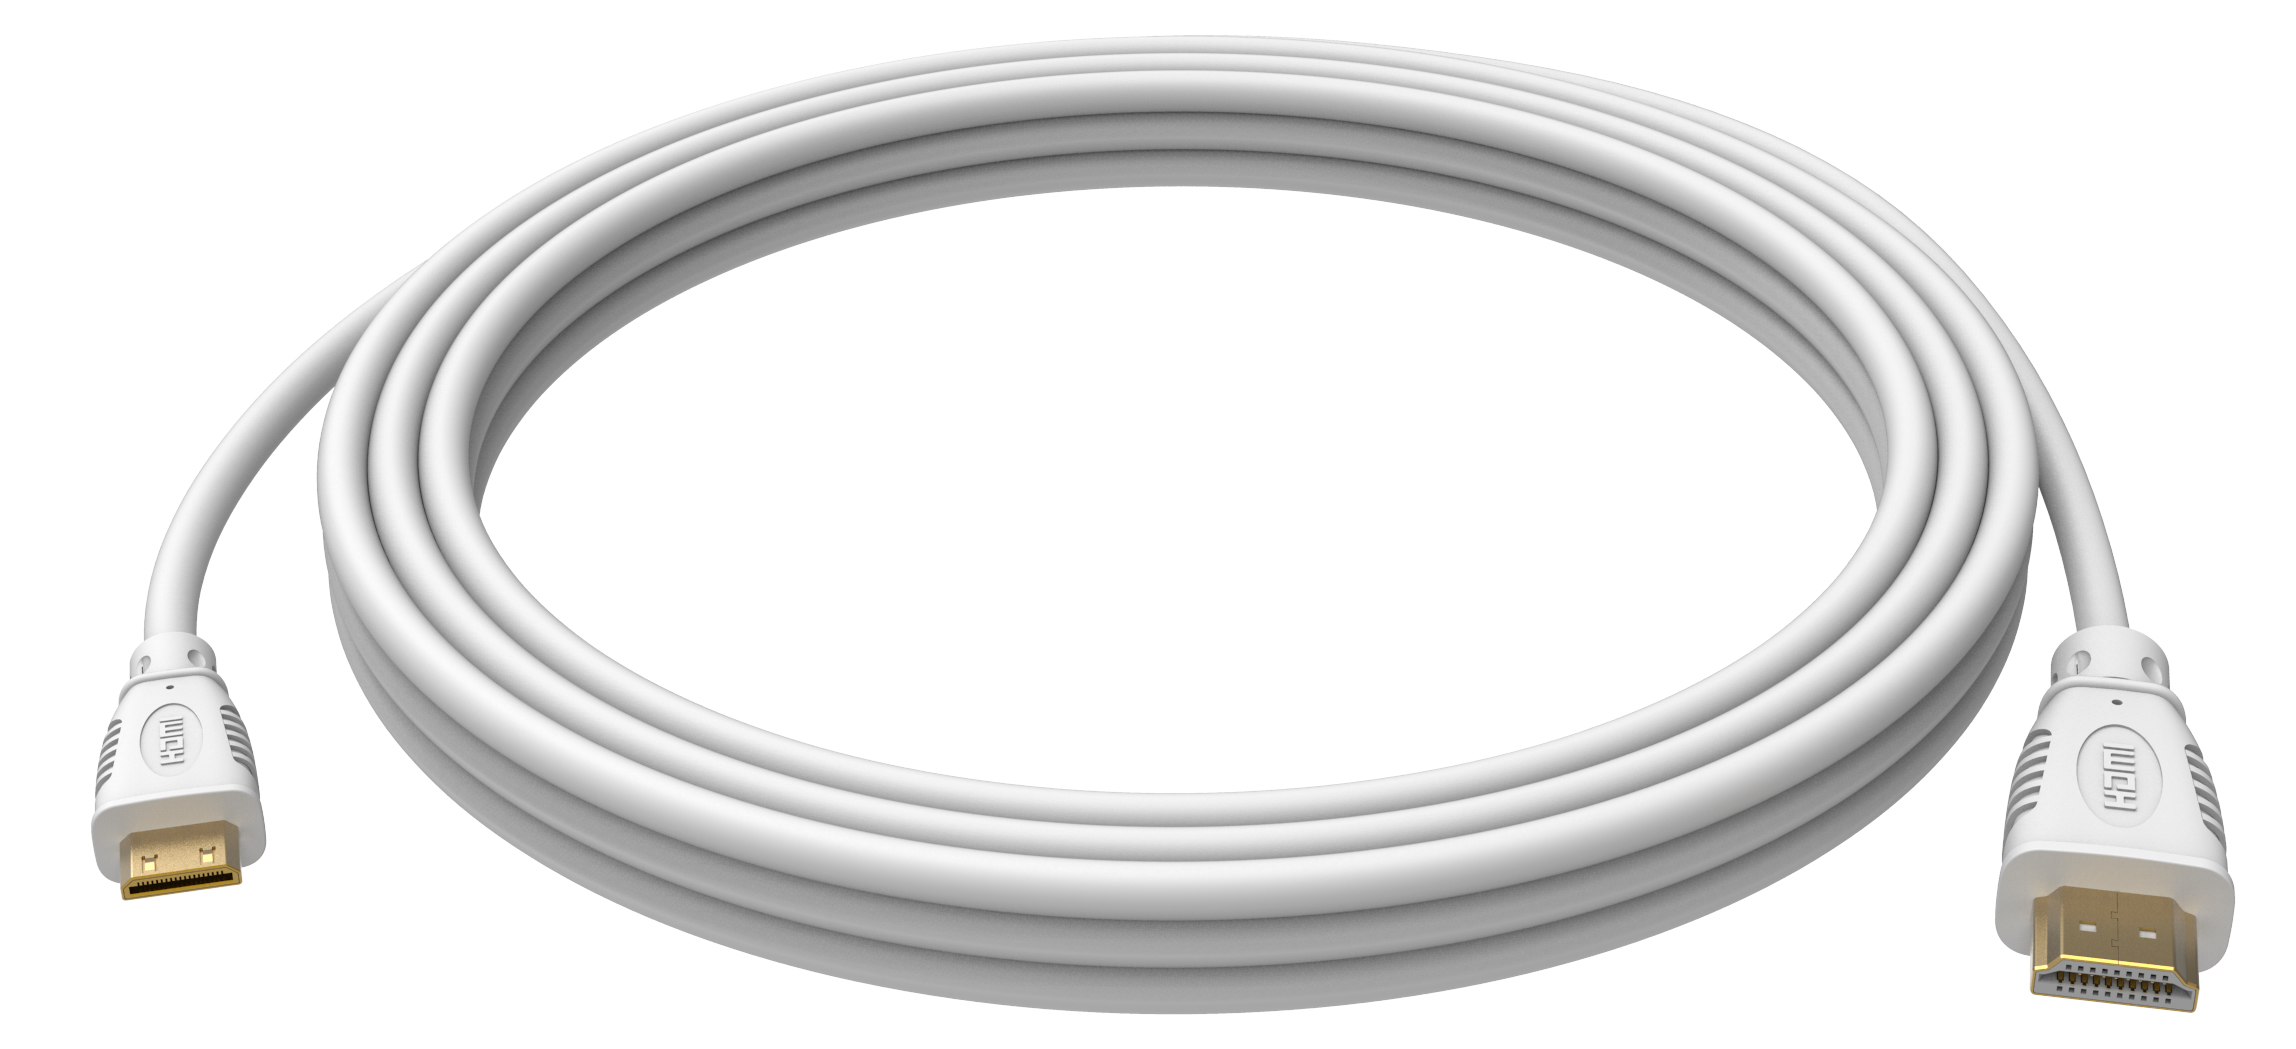 Vision TECHCONNECT 5M MINI-HDMI to HDMI CABLE Engineered connectivity solution, White, High-Speed (Category